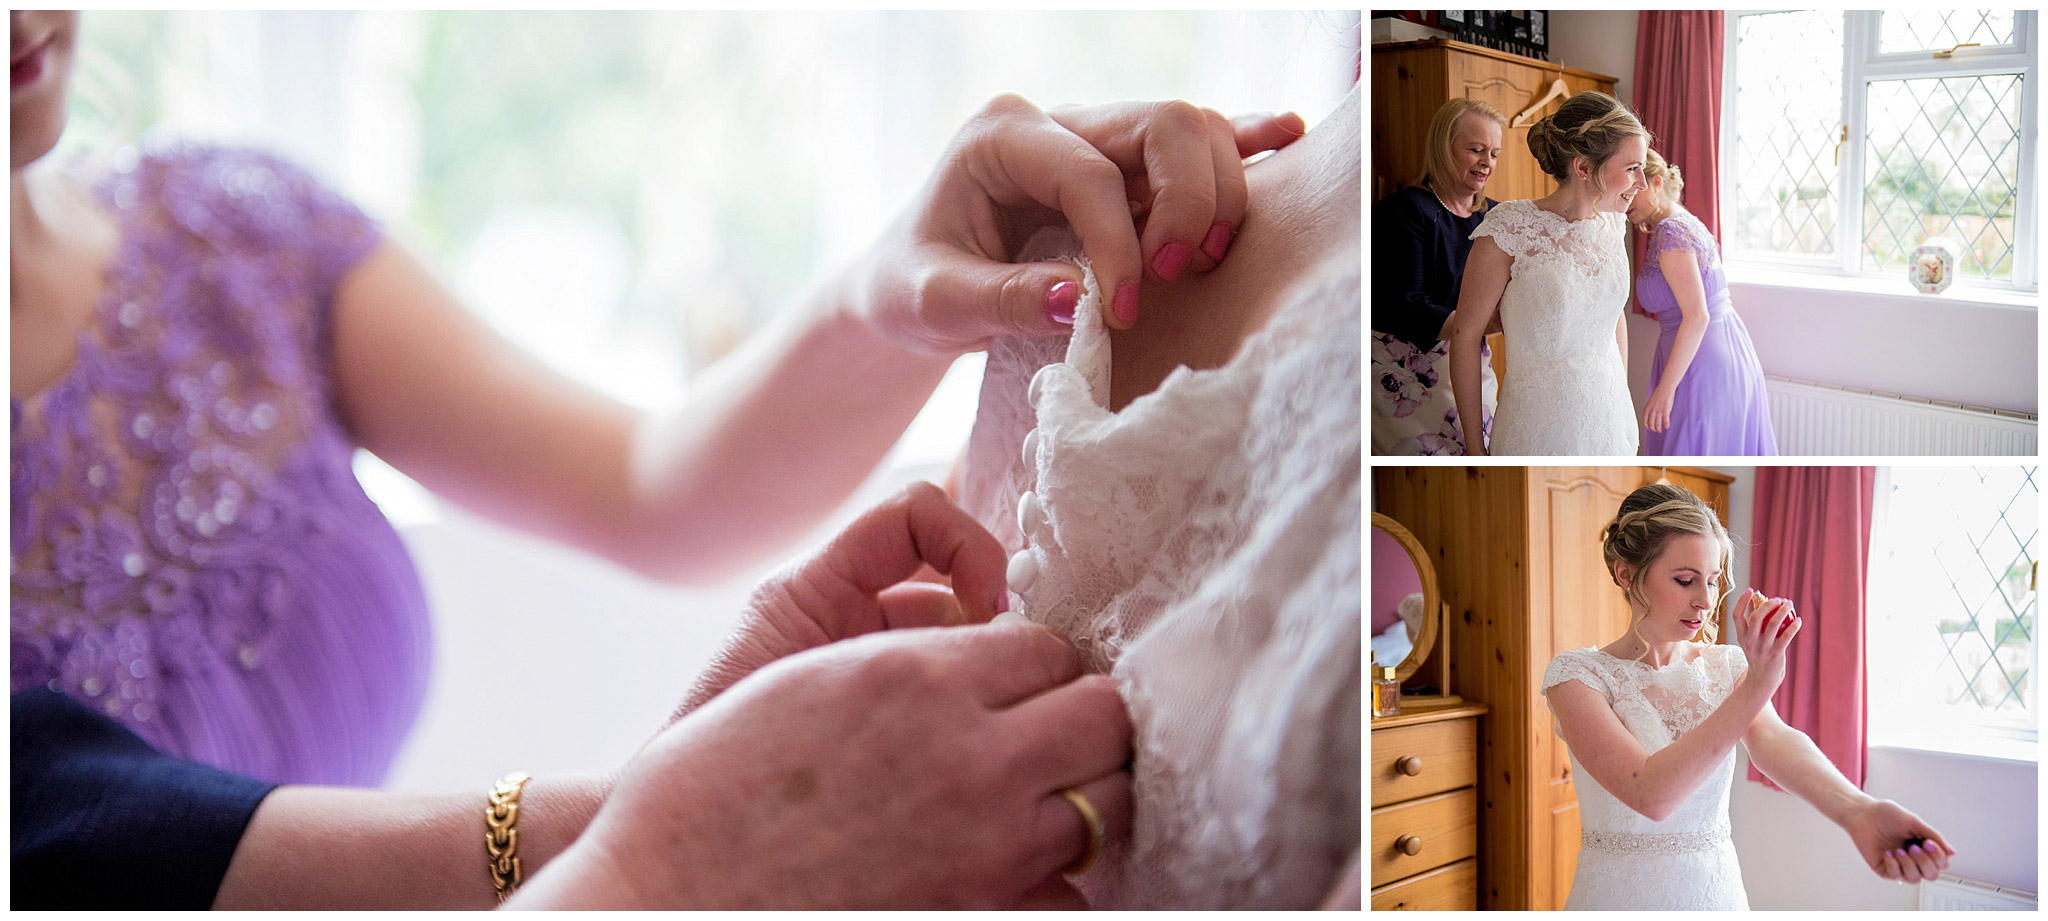 Bride getting into her wedding dress, bride putting on her perfume, brides mother helping bride into her wedding dress